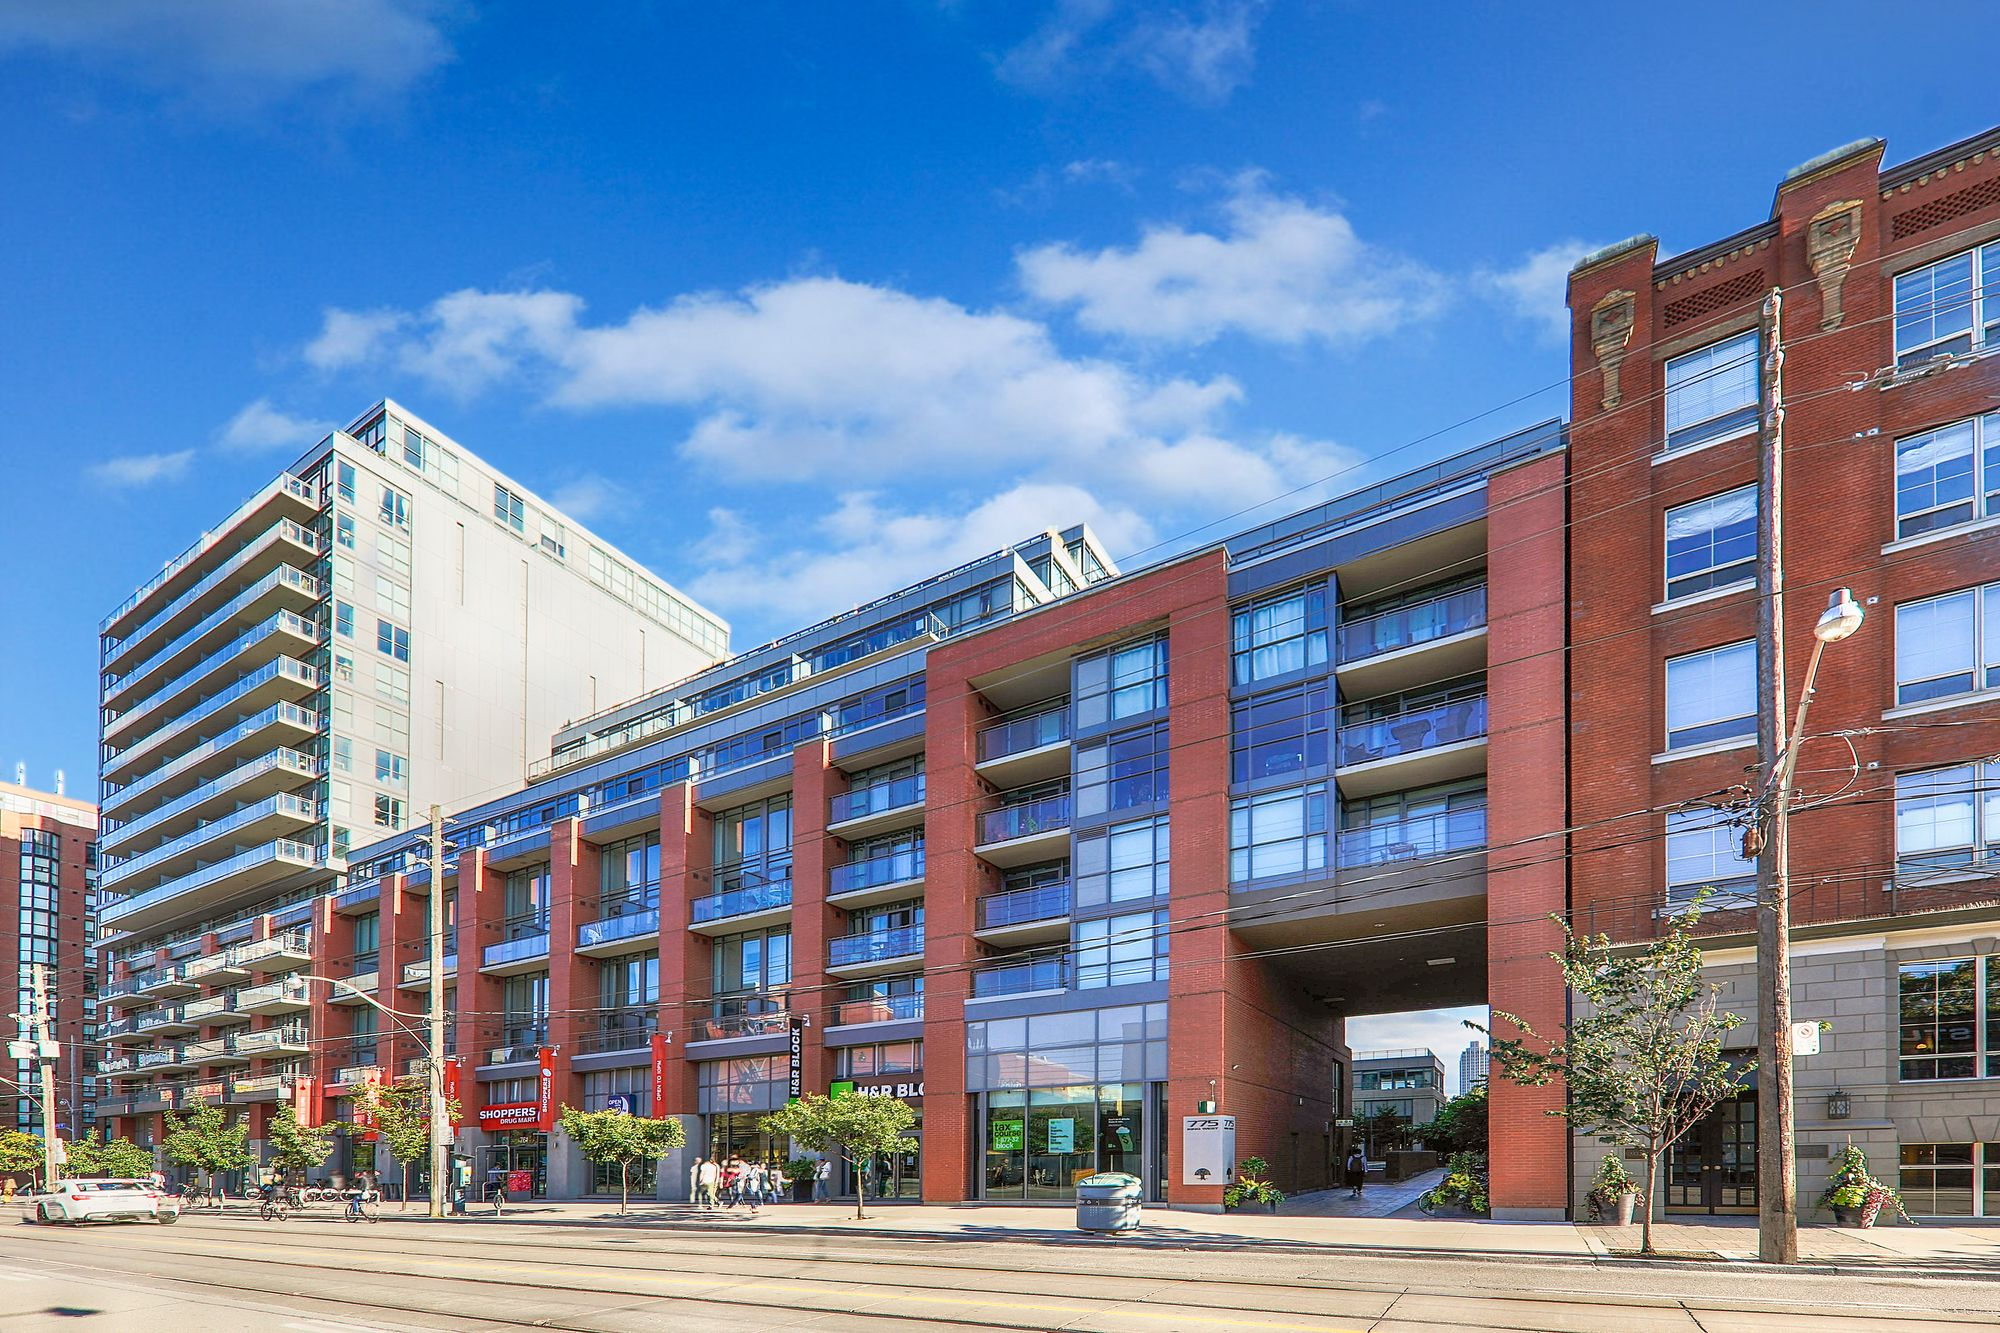 775 King St W. This condo at Minto 775 is located in  Downtown, Toronto - image #1 of 6 by Strata.ca